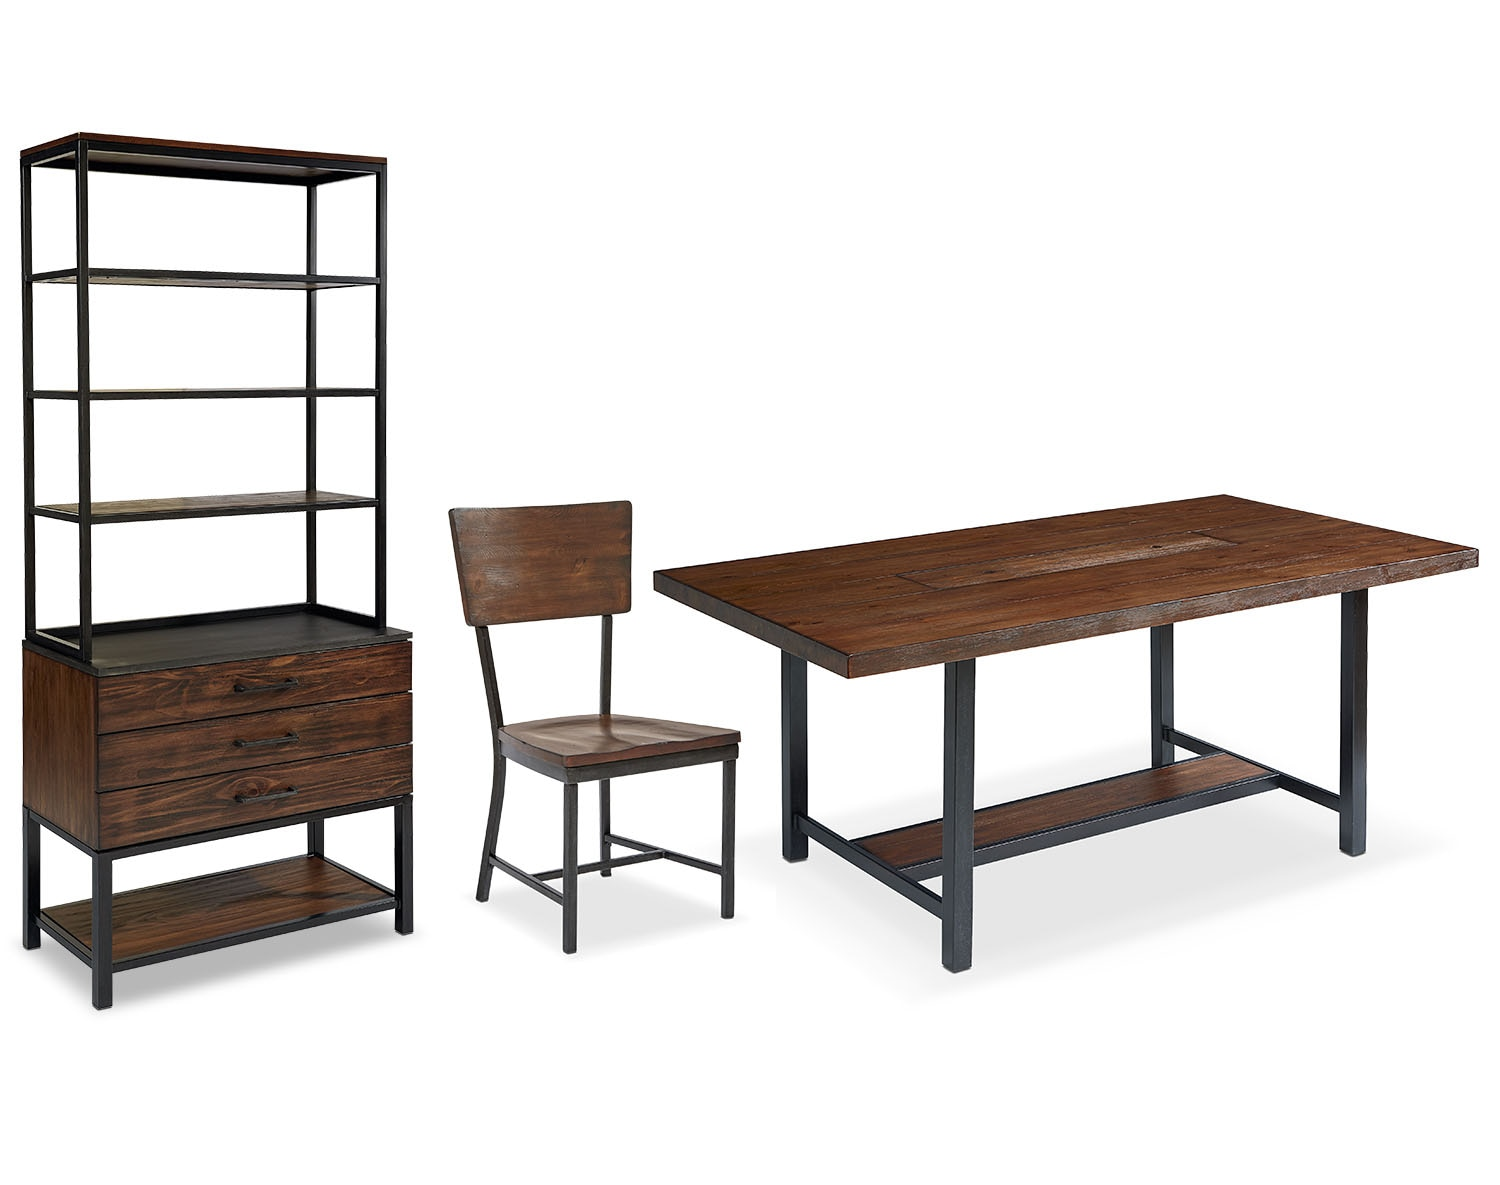 The Industrial Framework Dining Room Collection - Milk Crate